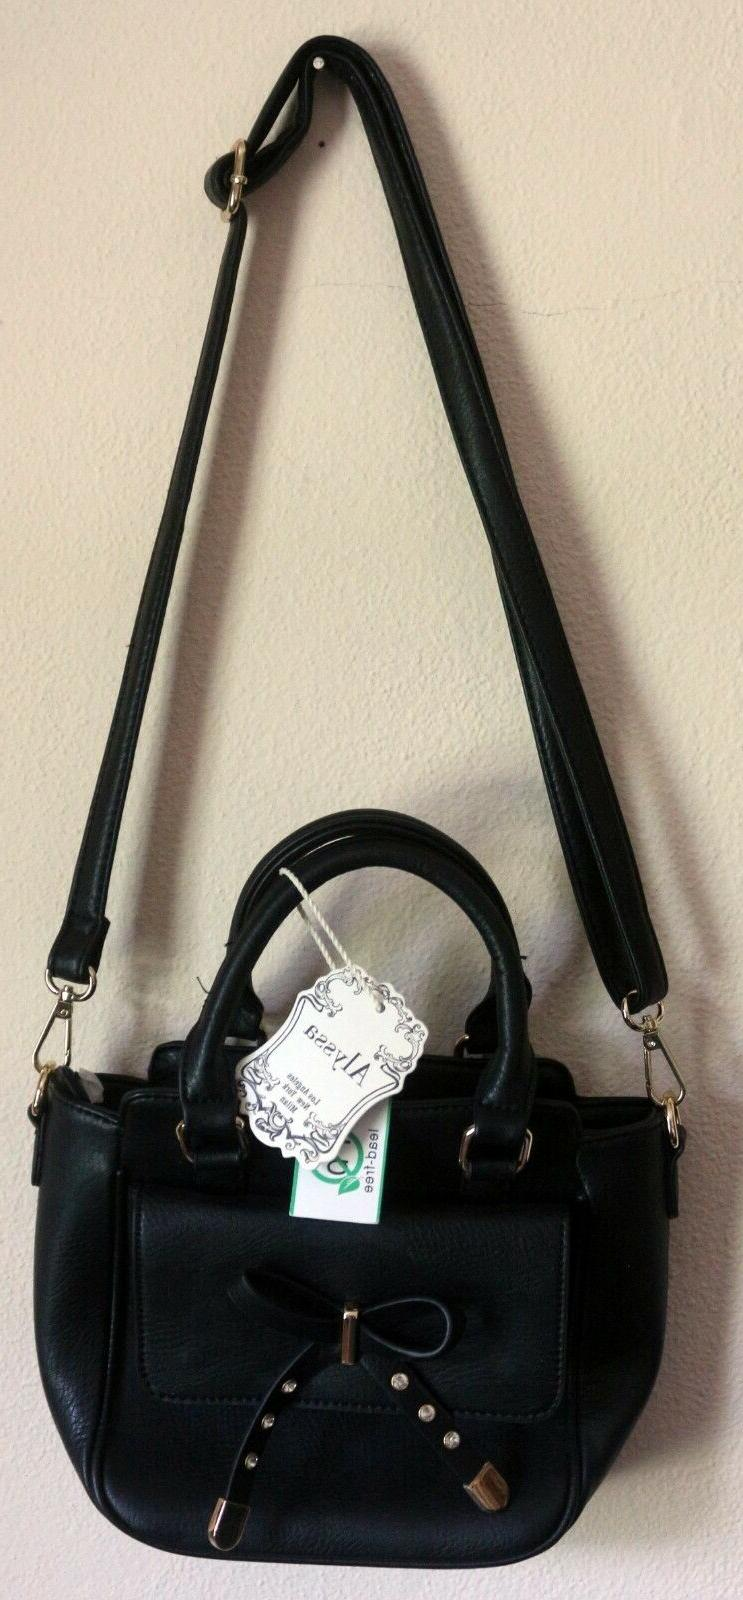 nwt vegan lead free faux leather black